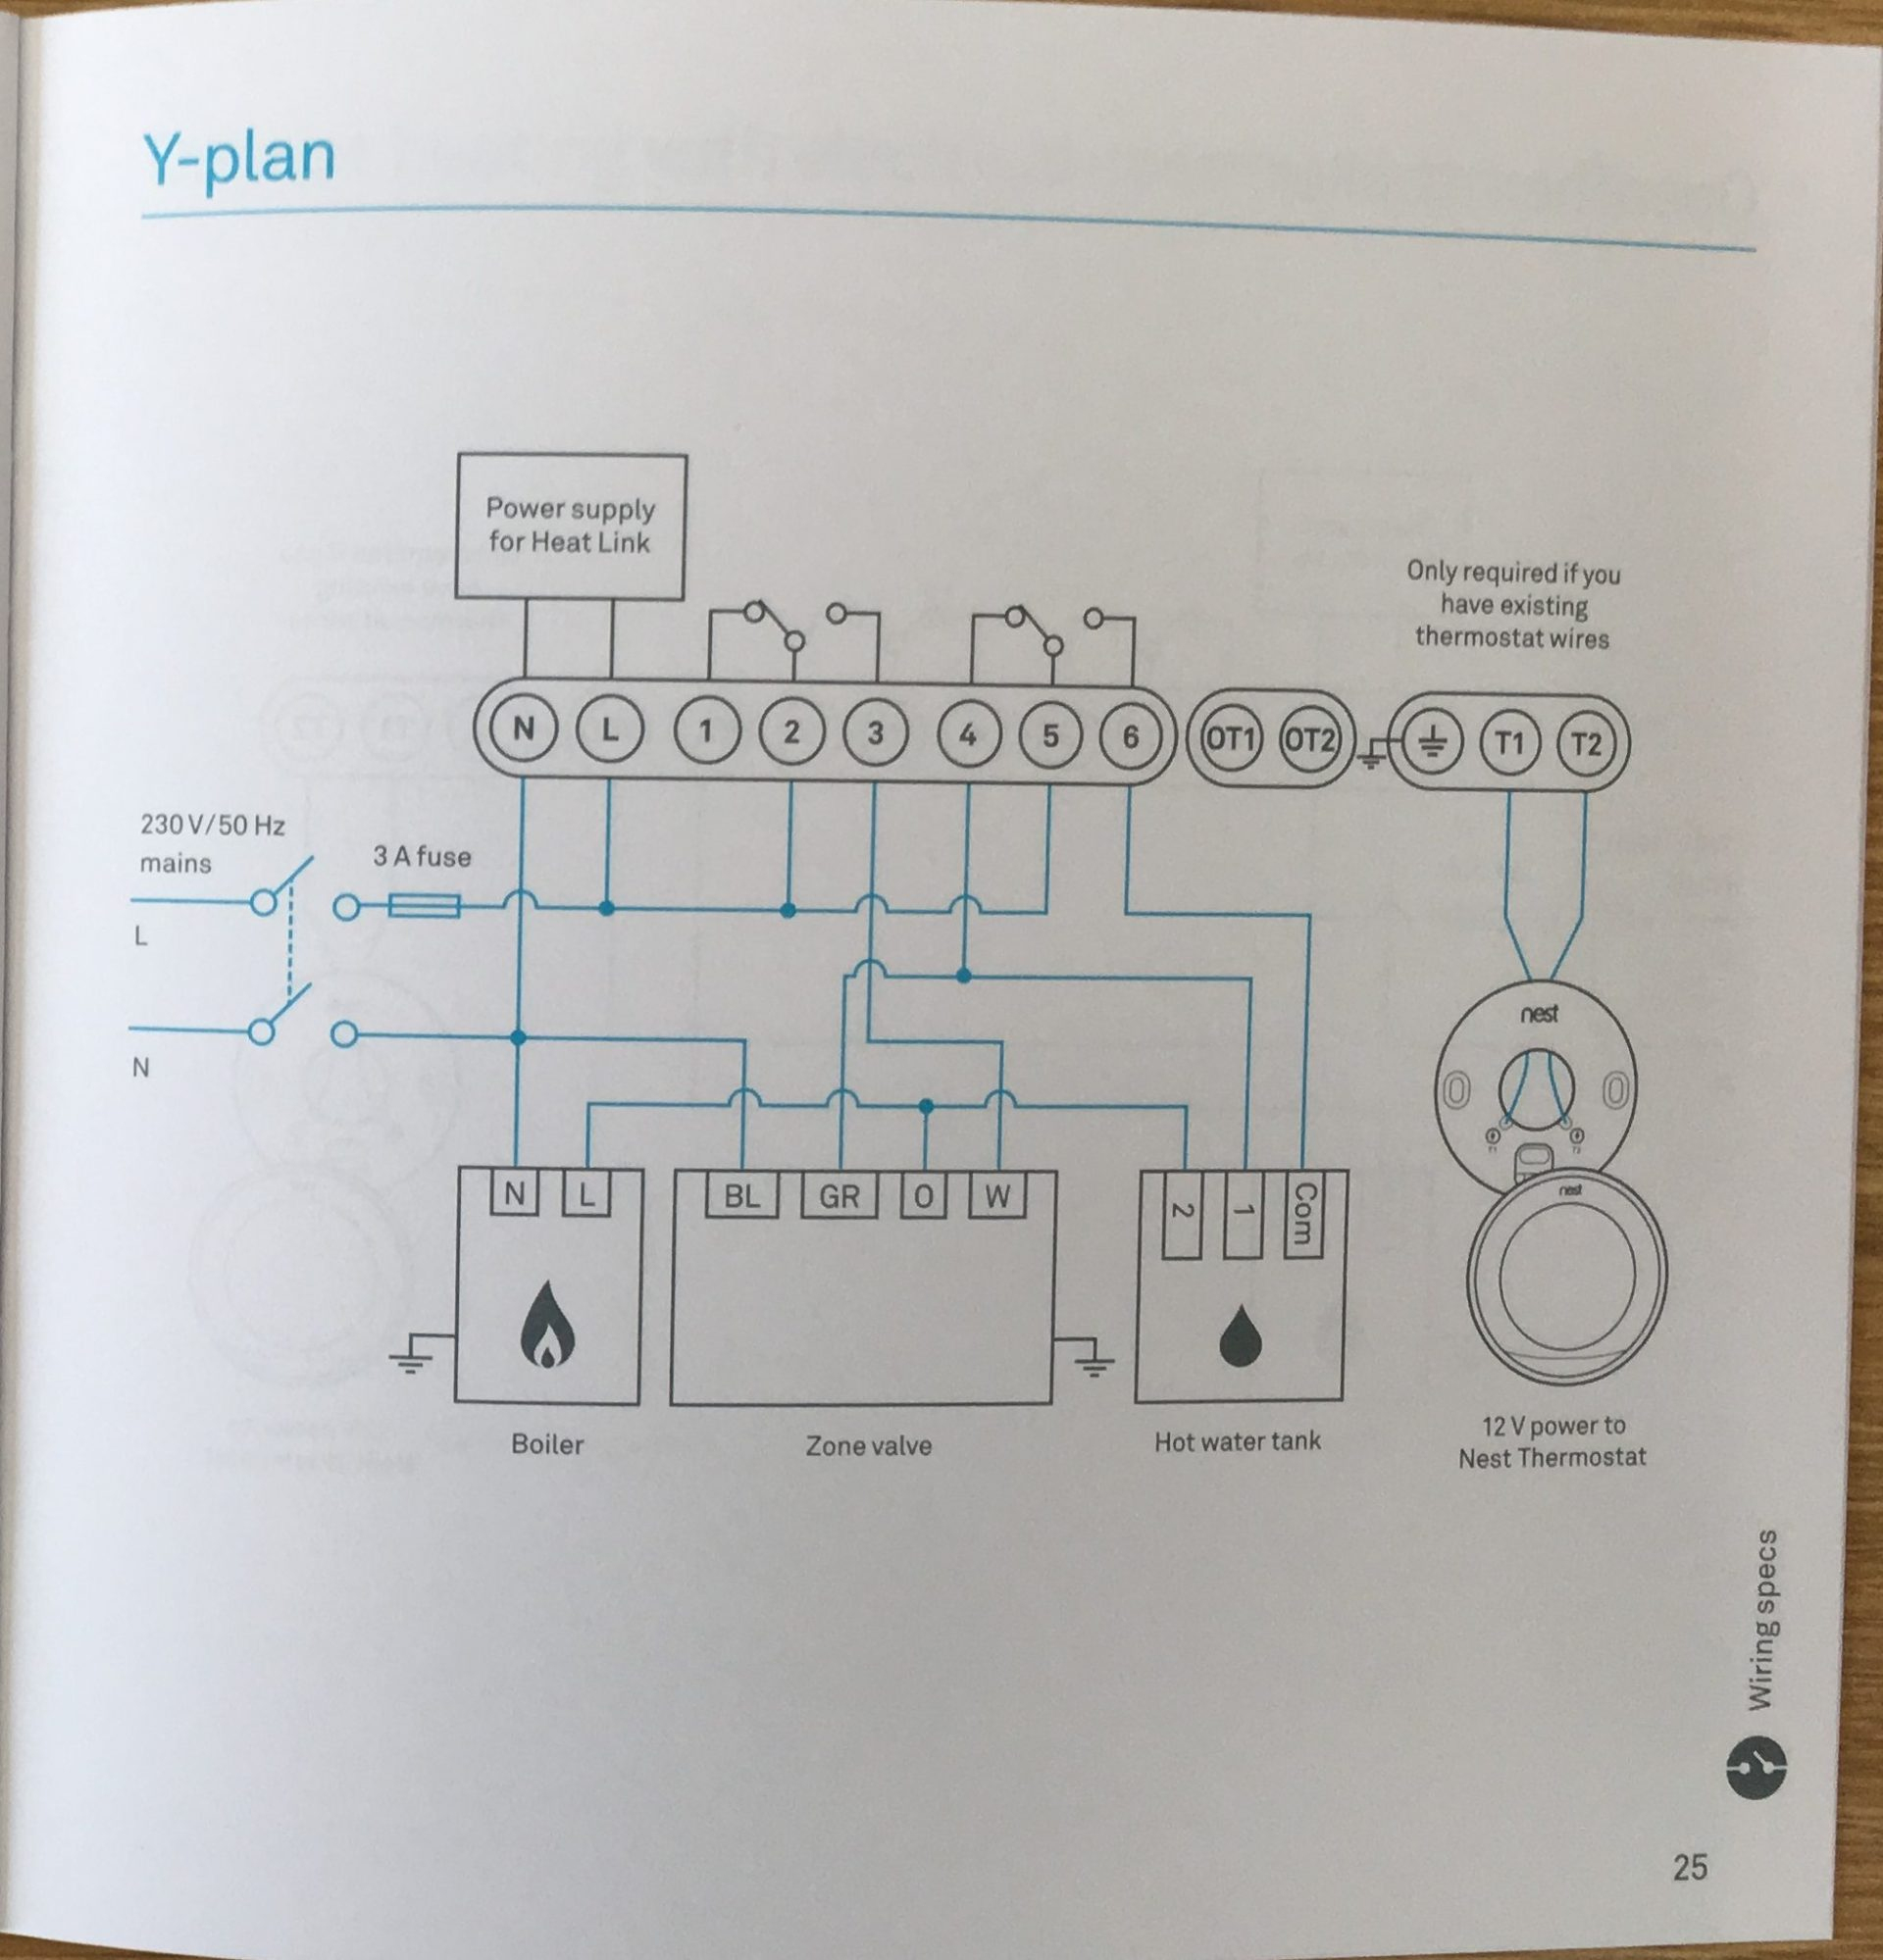 How To Install The Nest Learning Thermostat (3Rd Gen) In A Y-Plan - Diy Nest Thermostat Wiring Diagram